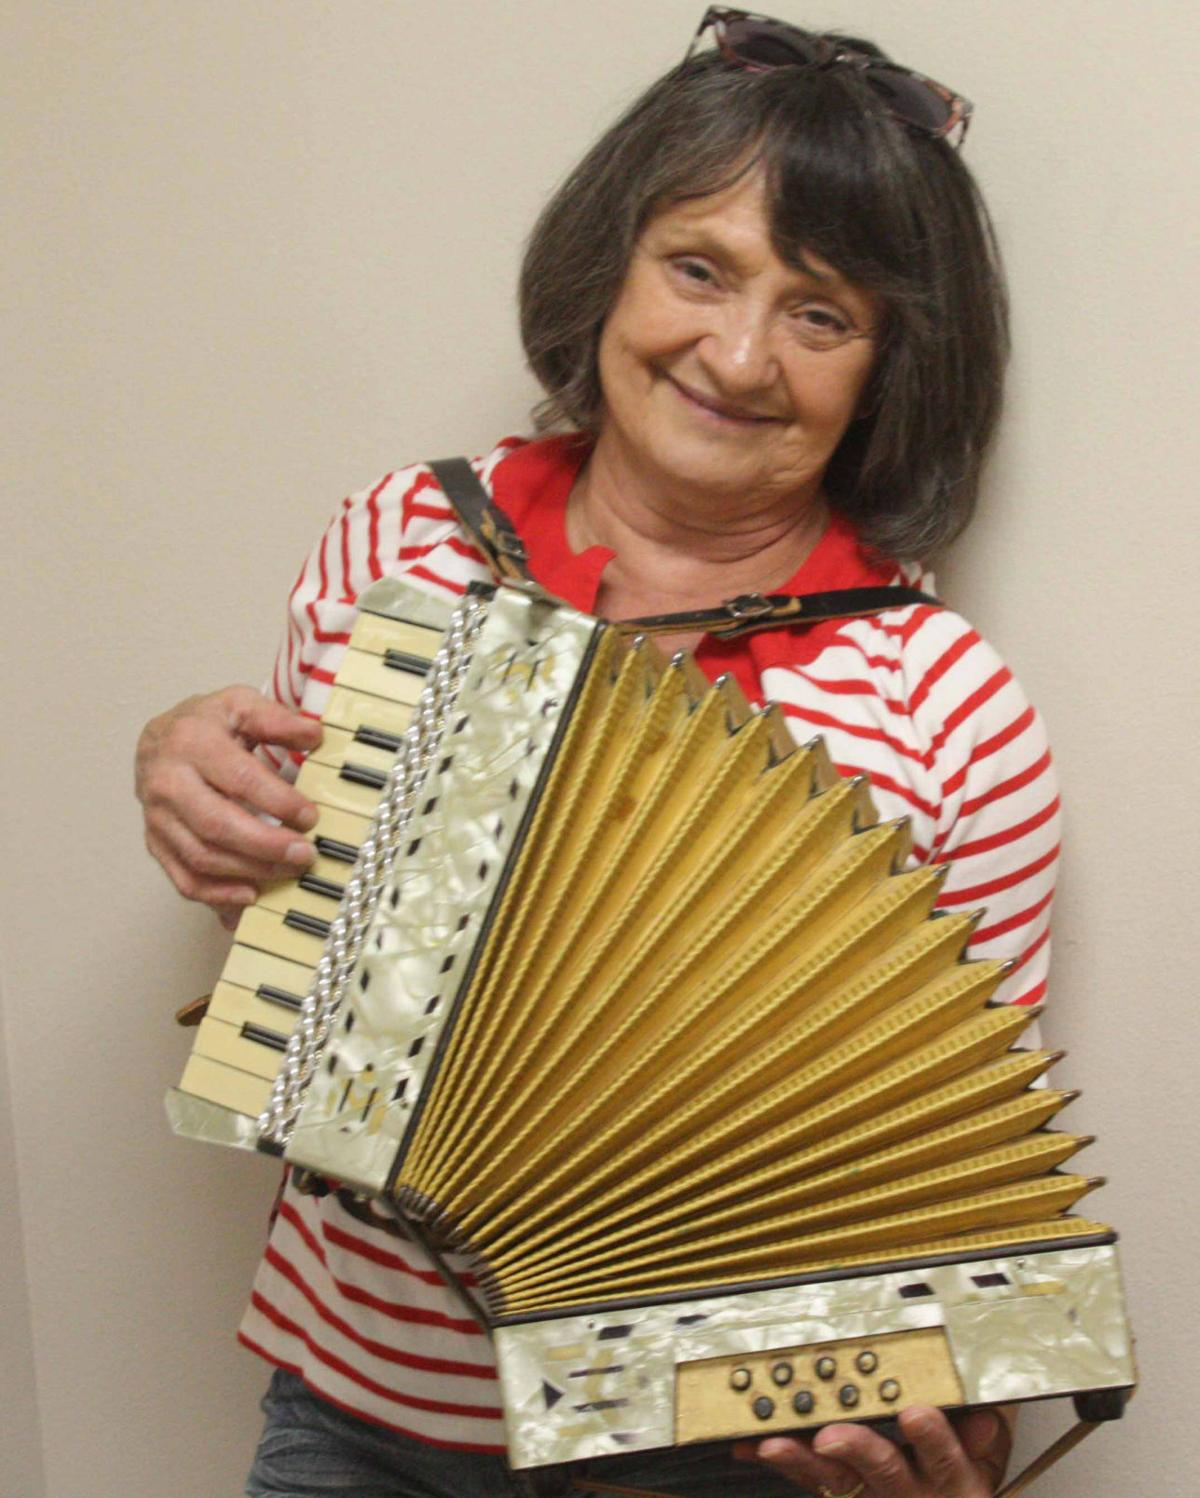 Barb poses with accordion